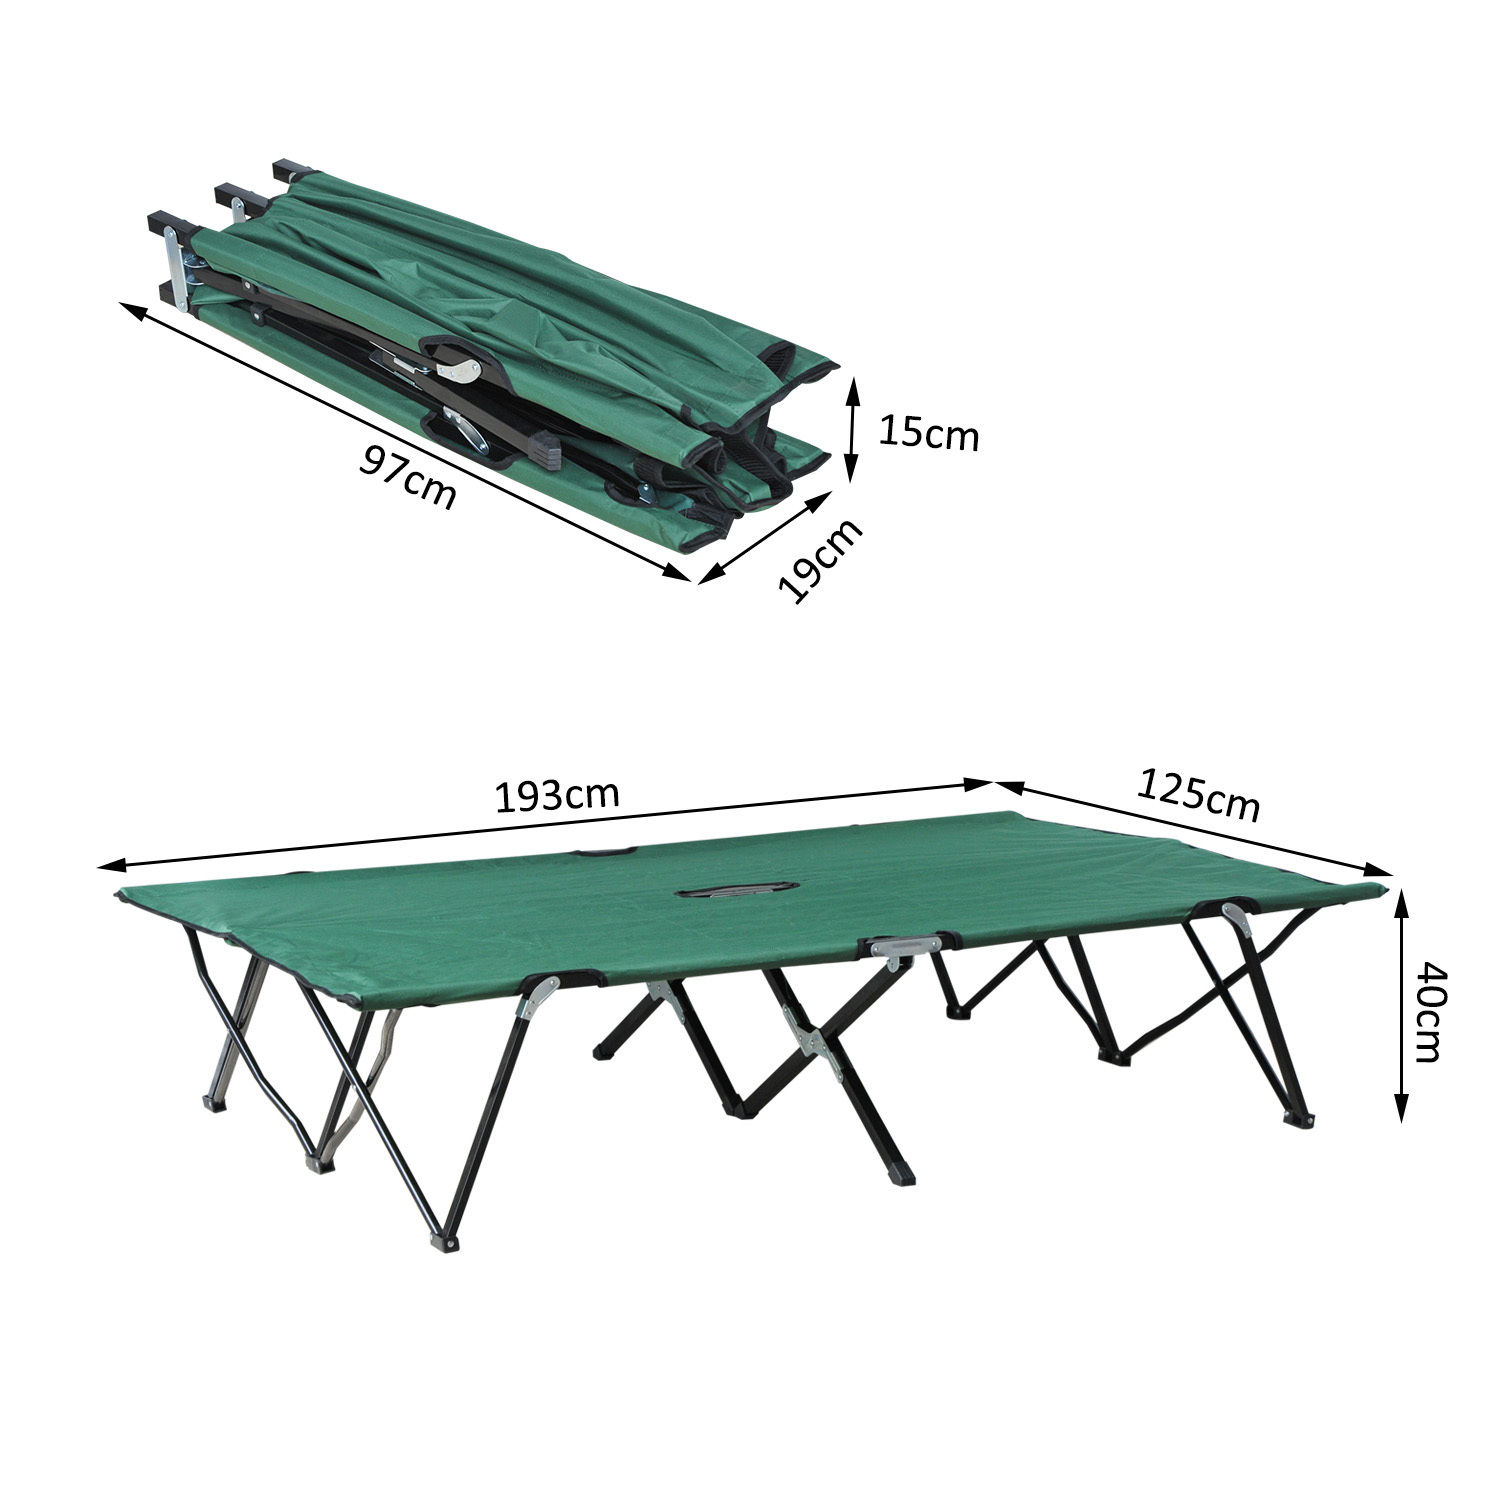 Outsunny 2 Person Double Camping Cot Outdoor Patio Travel